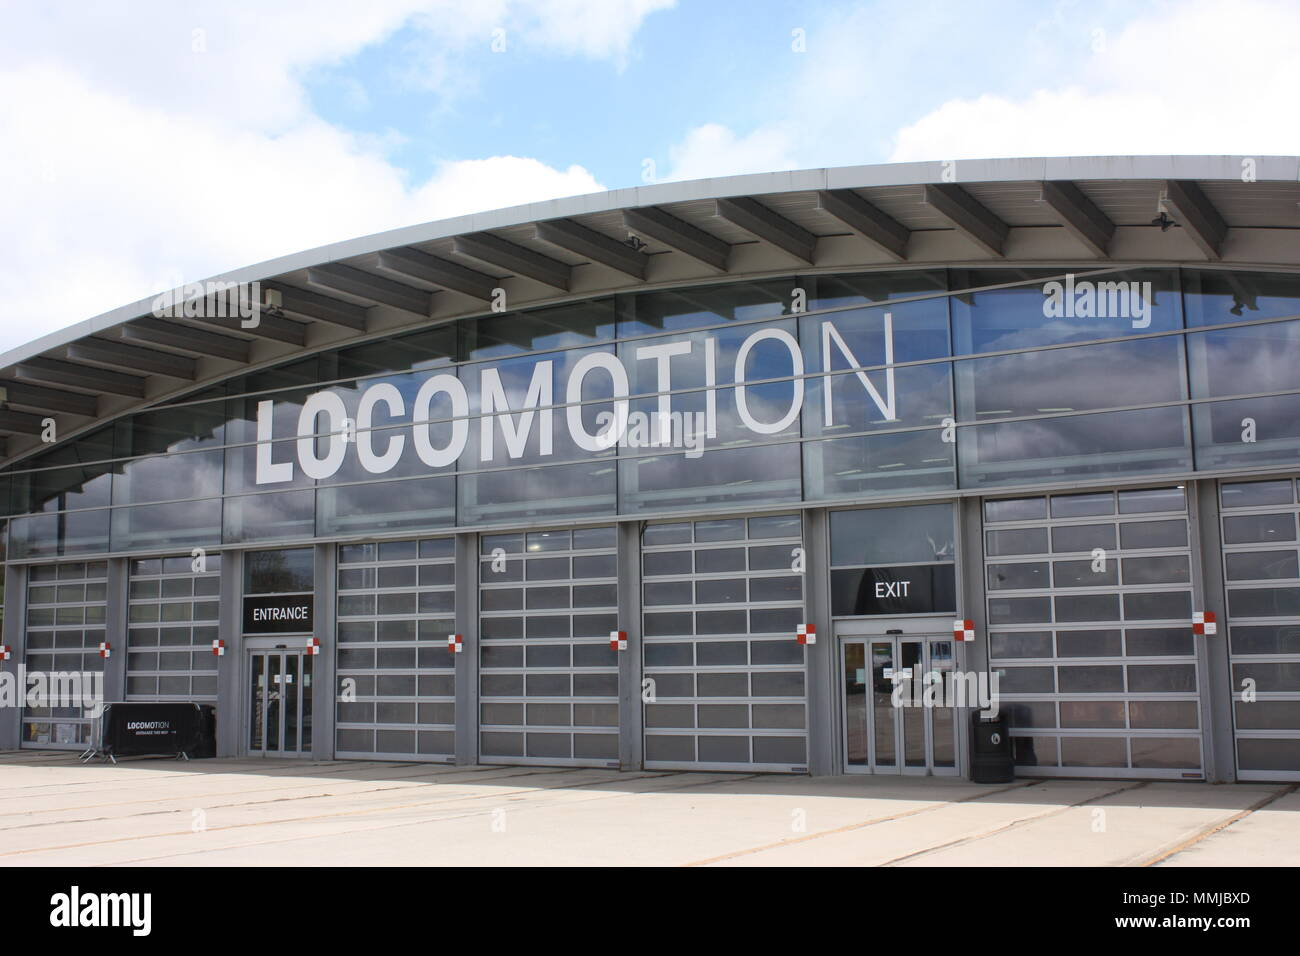 The Locomotion building at Shildon, part of the National Railway Museum Stock Photo